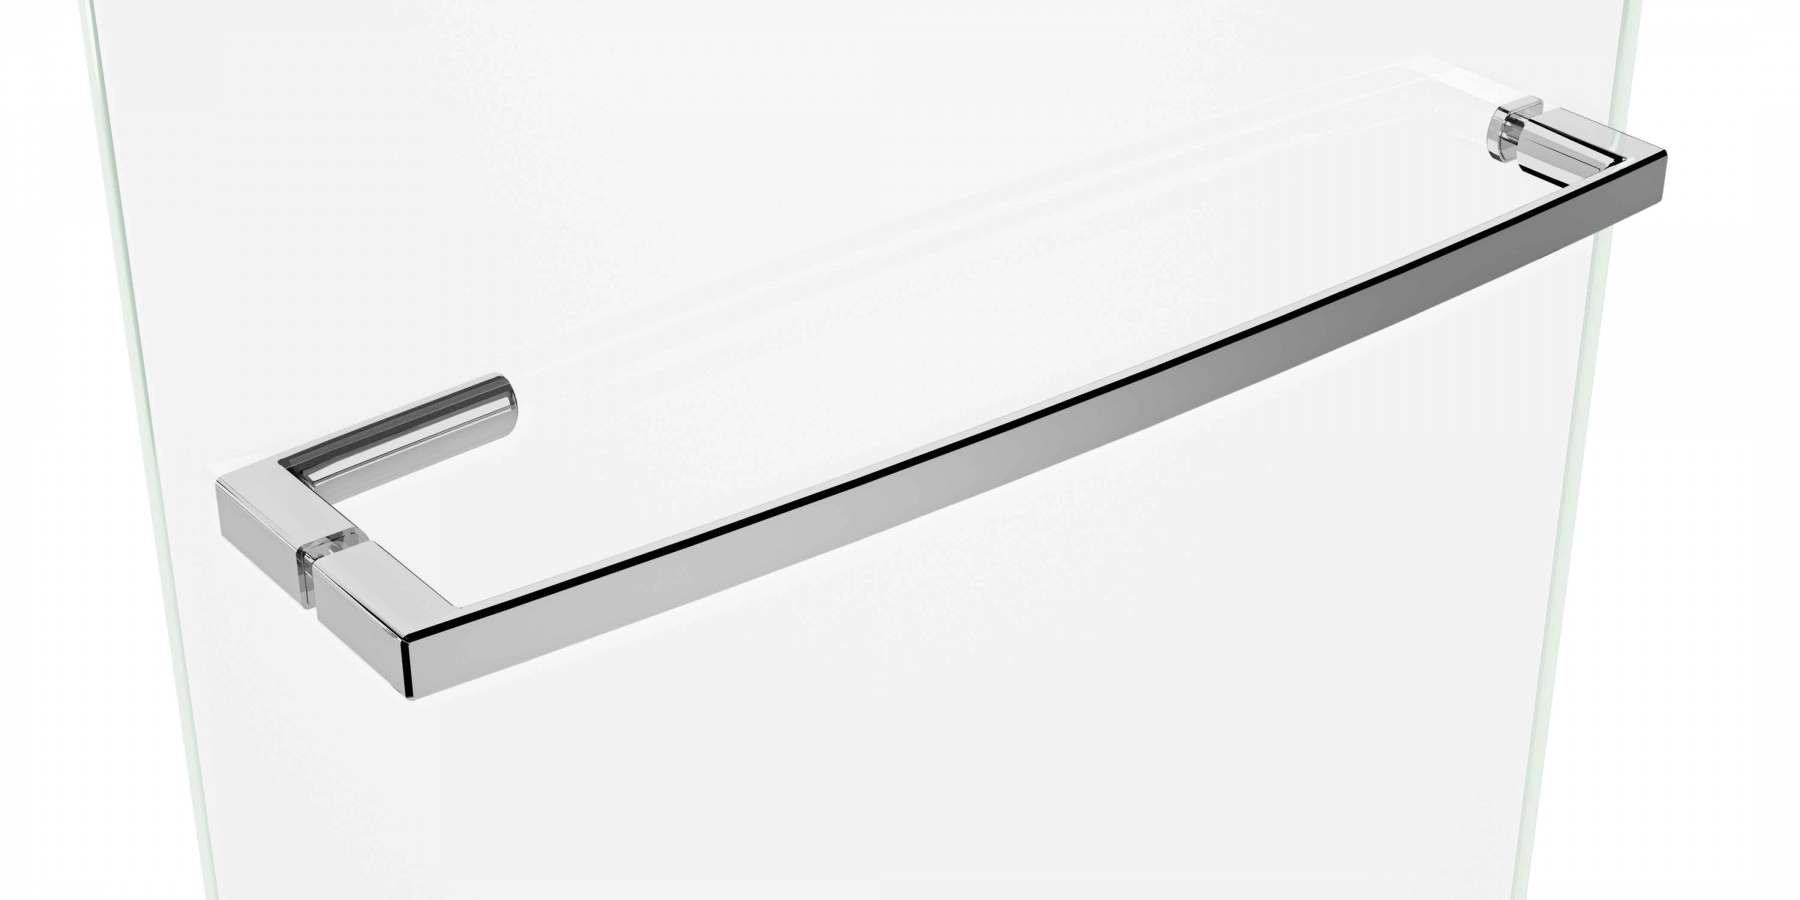 ARYSTOX_Handle_towelrail_Close-up_LR